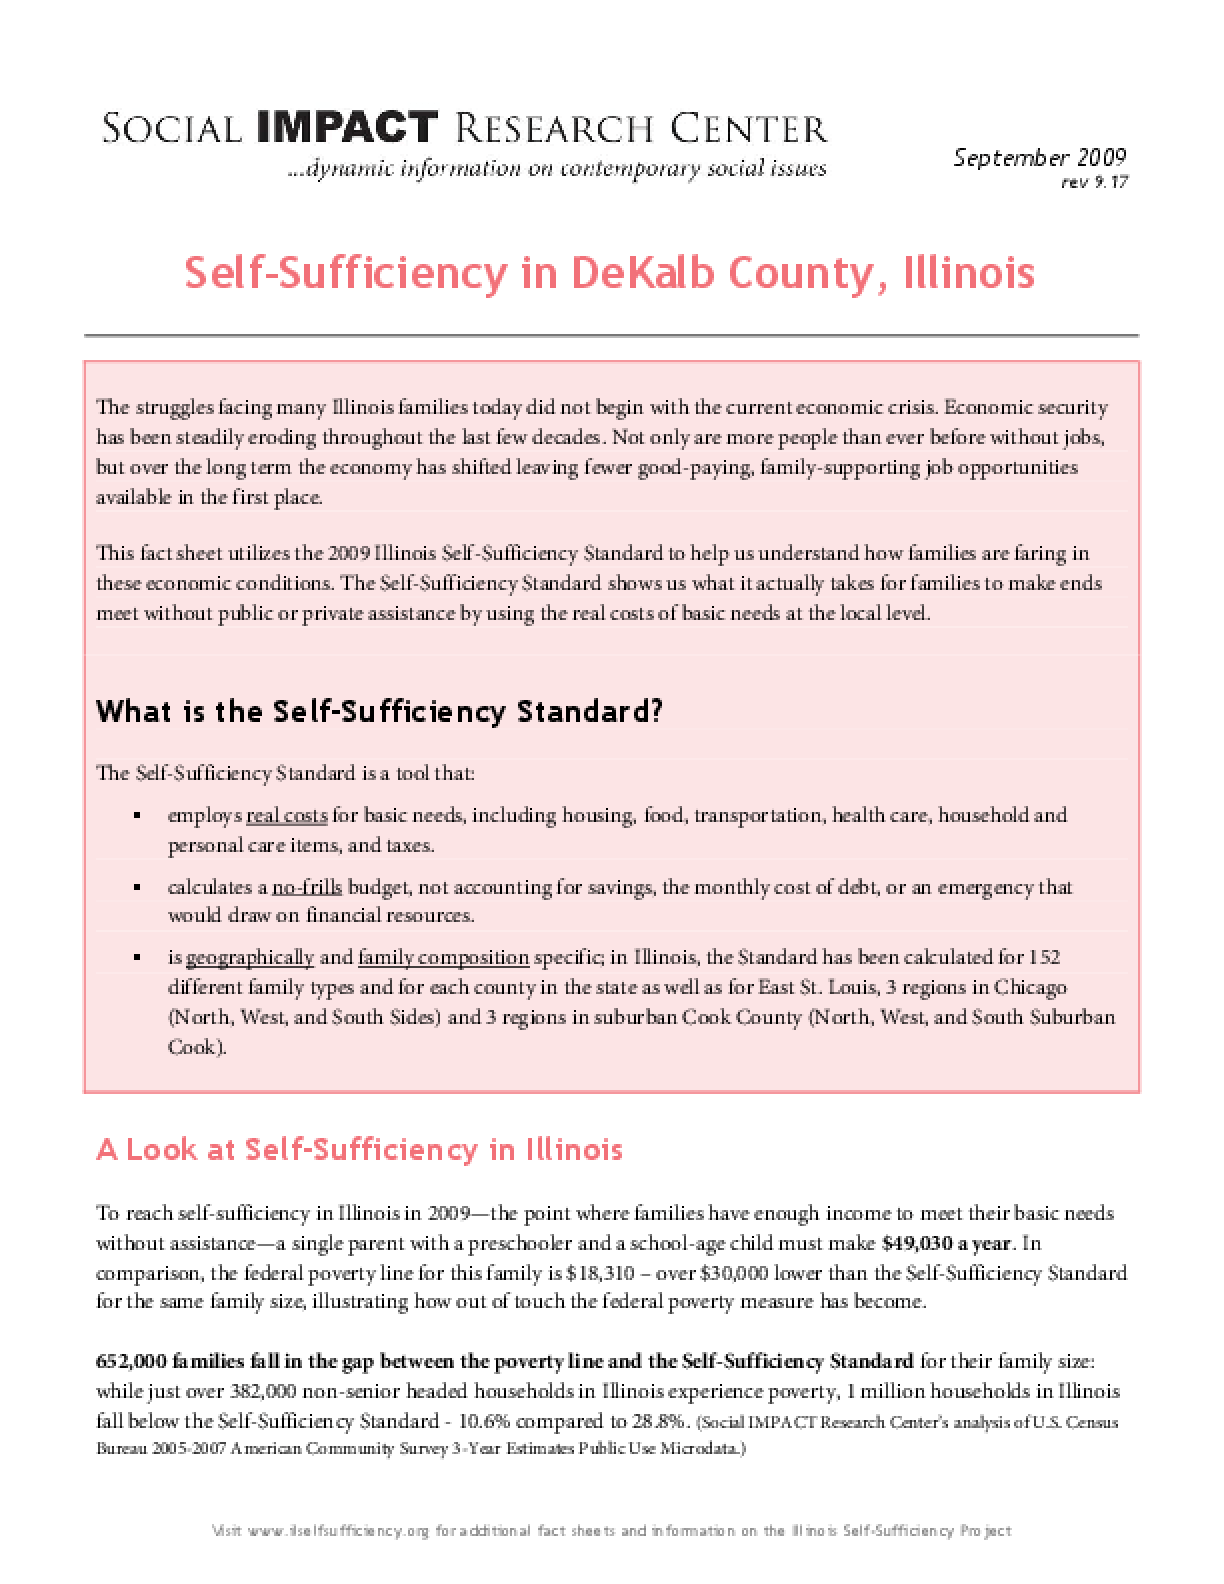 Self-Sufficiency in DeKalb County, Illinois